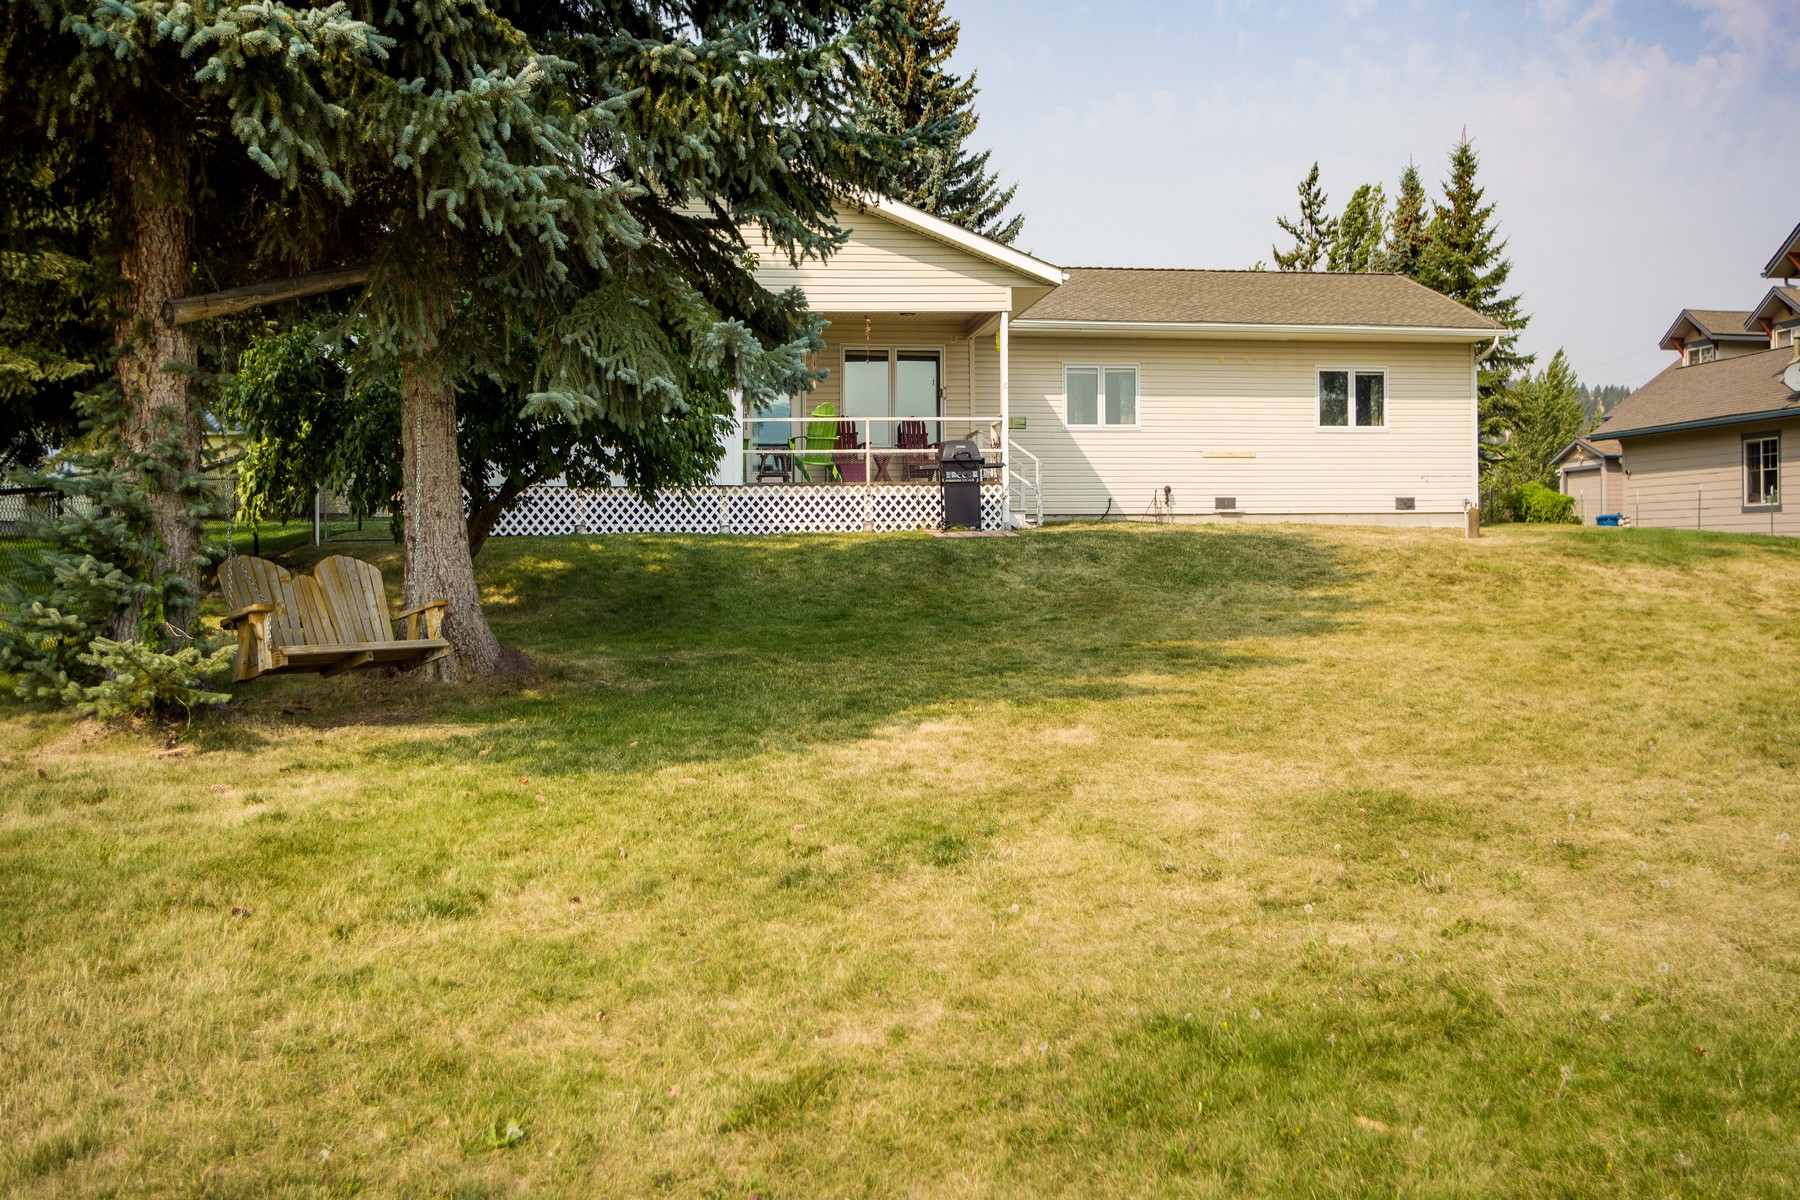 Single Family Home for Sale at 28284 Skipping Rock Ln , Big Arm, MT 59910 28284 Skipping Rock Ln Big Arm, Montana 59910 United States